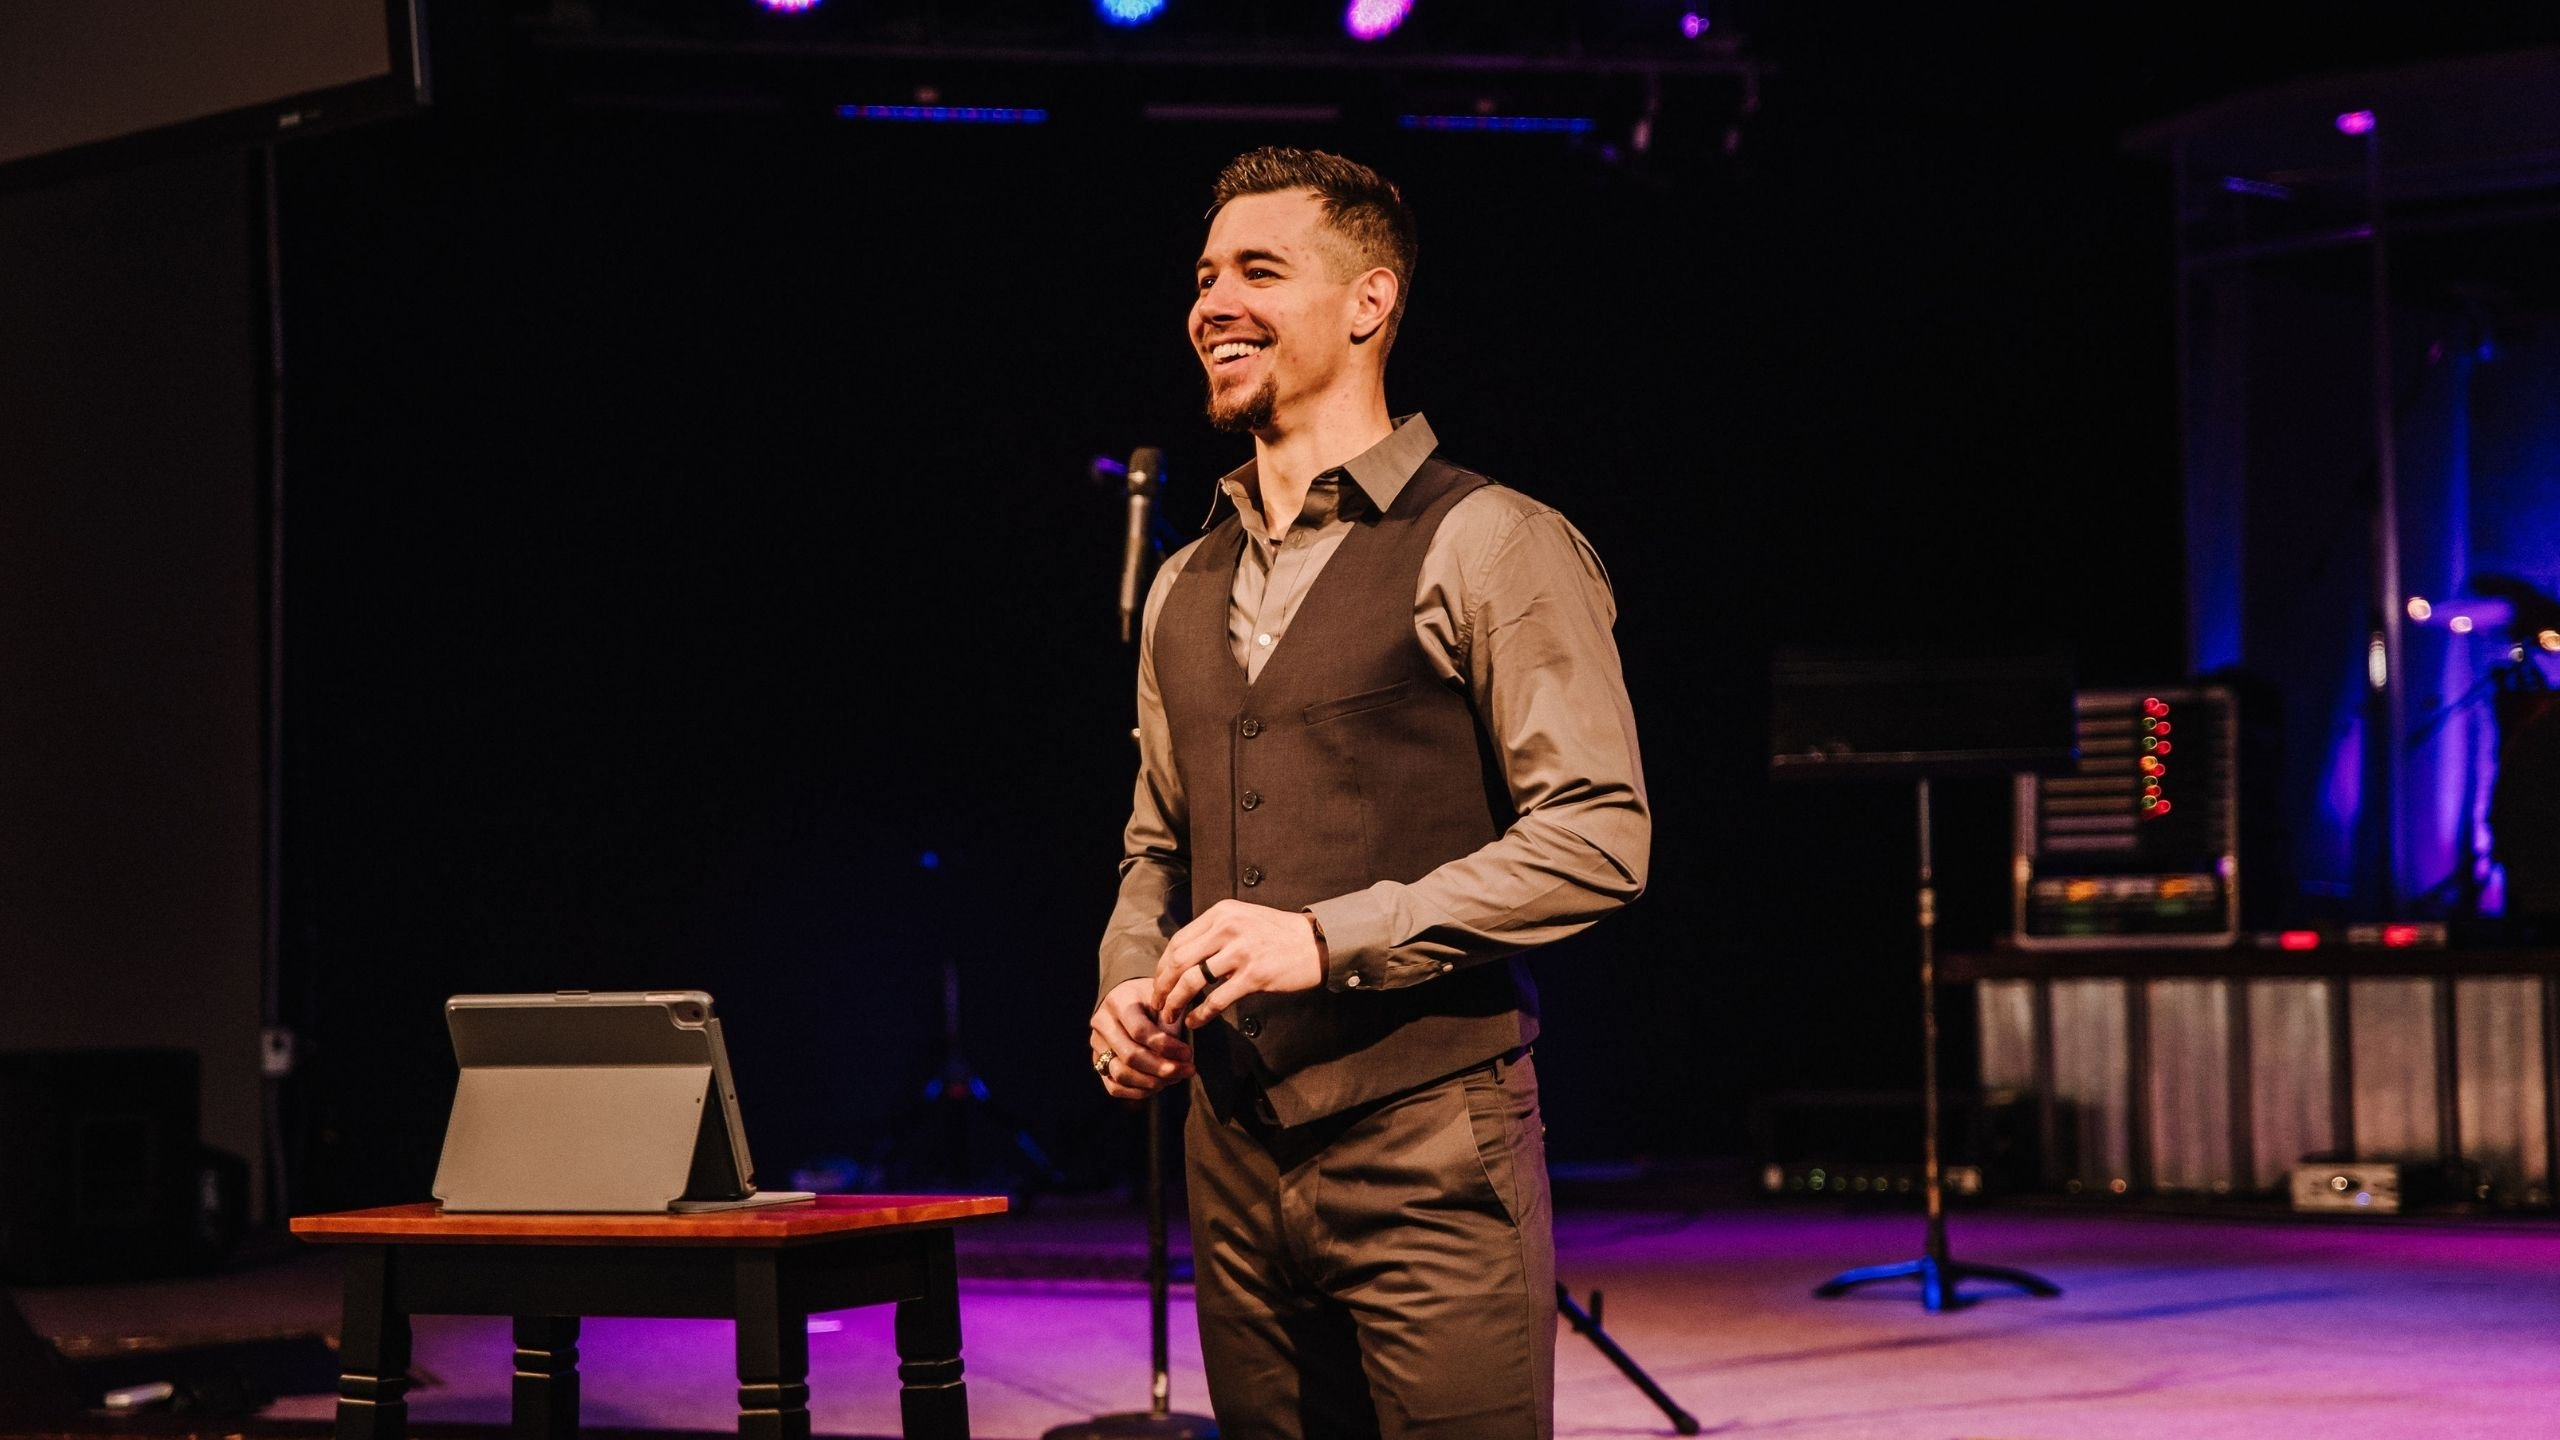 Man in a suit standing on a stage smiling